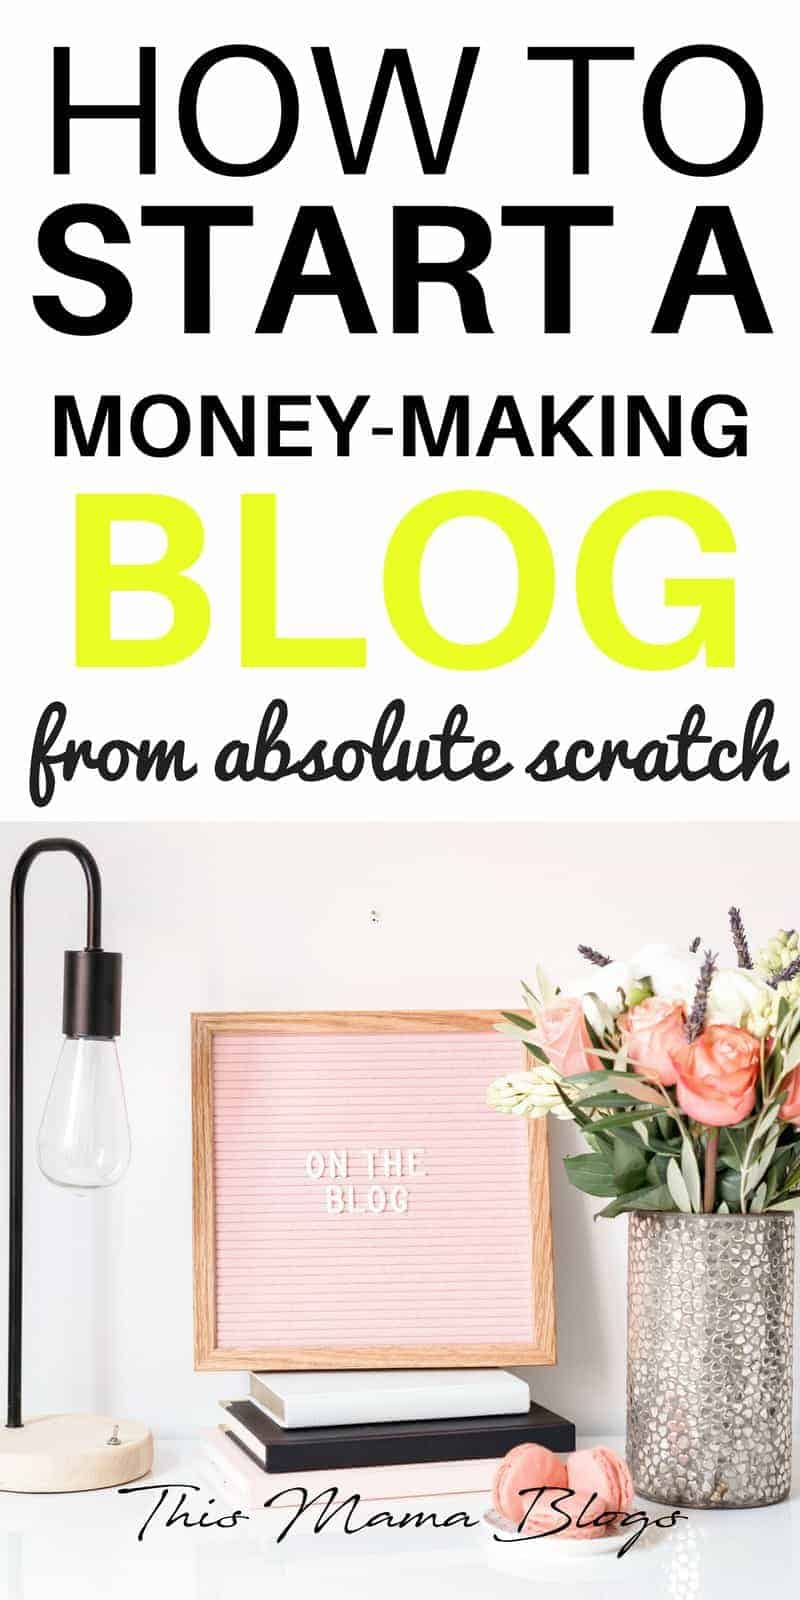 How to Start a Blog from Absolute Scratch